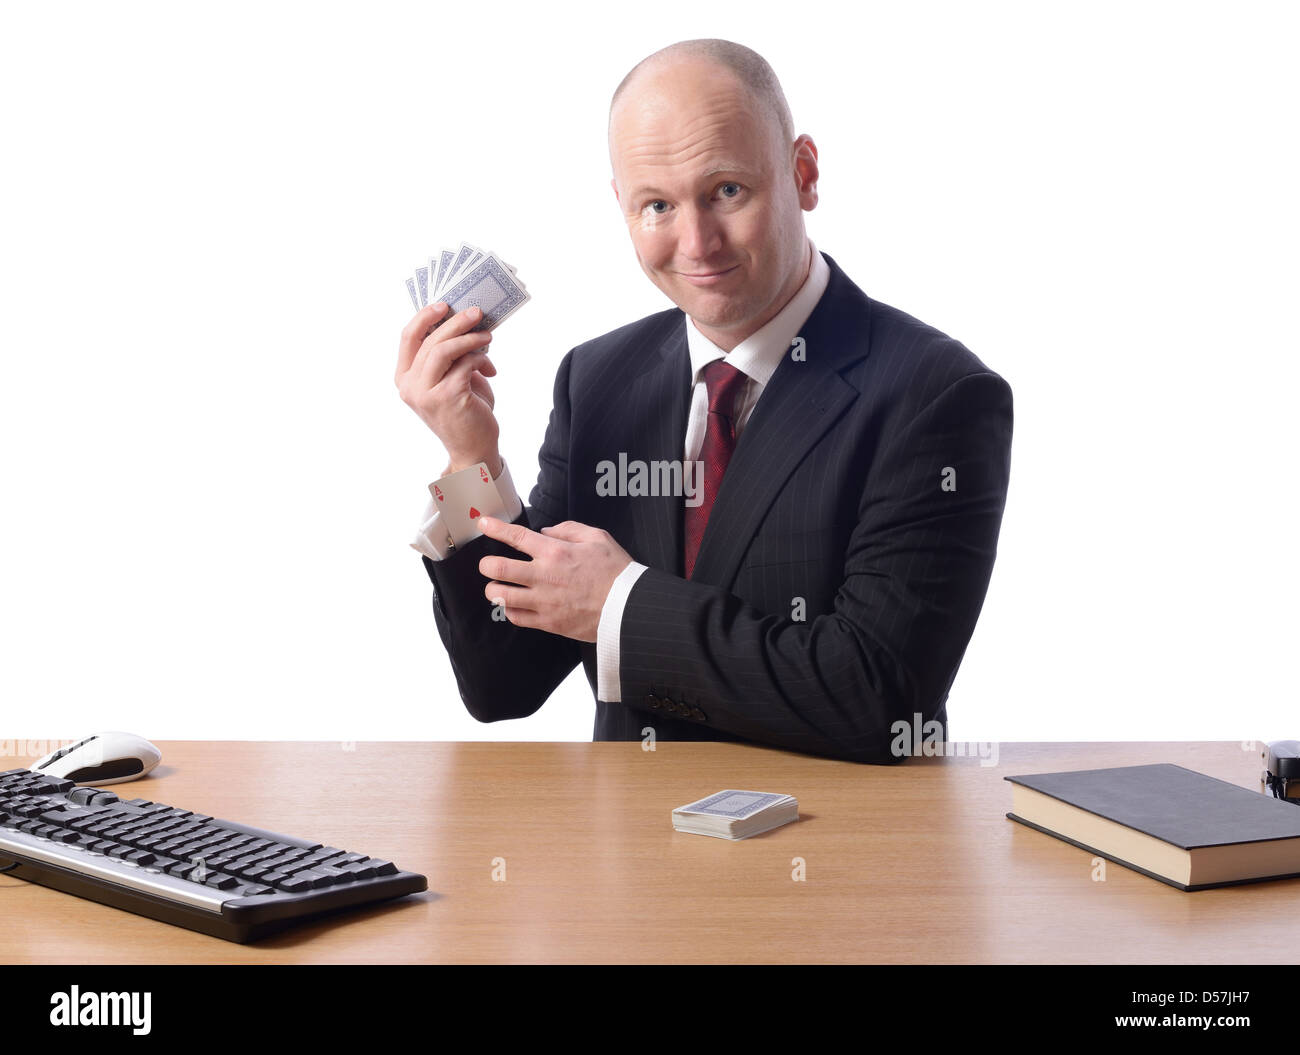 business man at with cocept of winning hand or upper hand - Stock Image